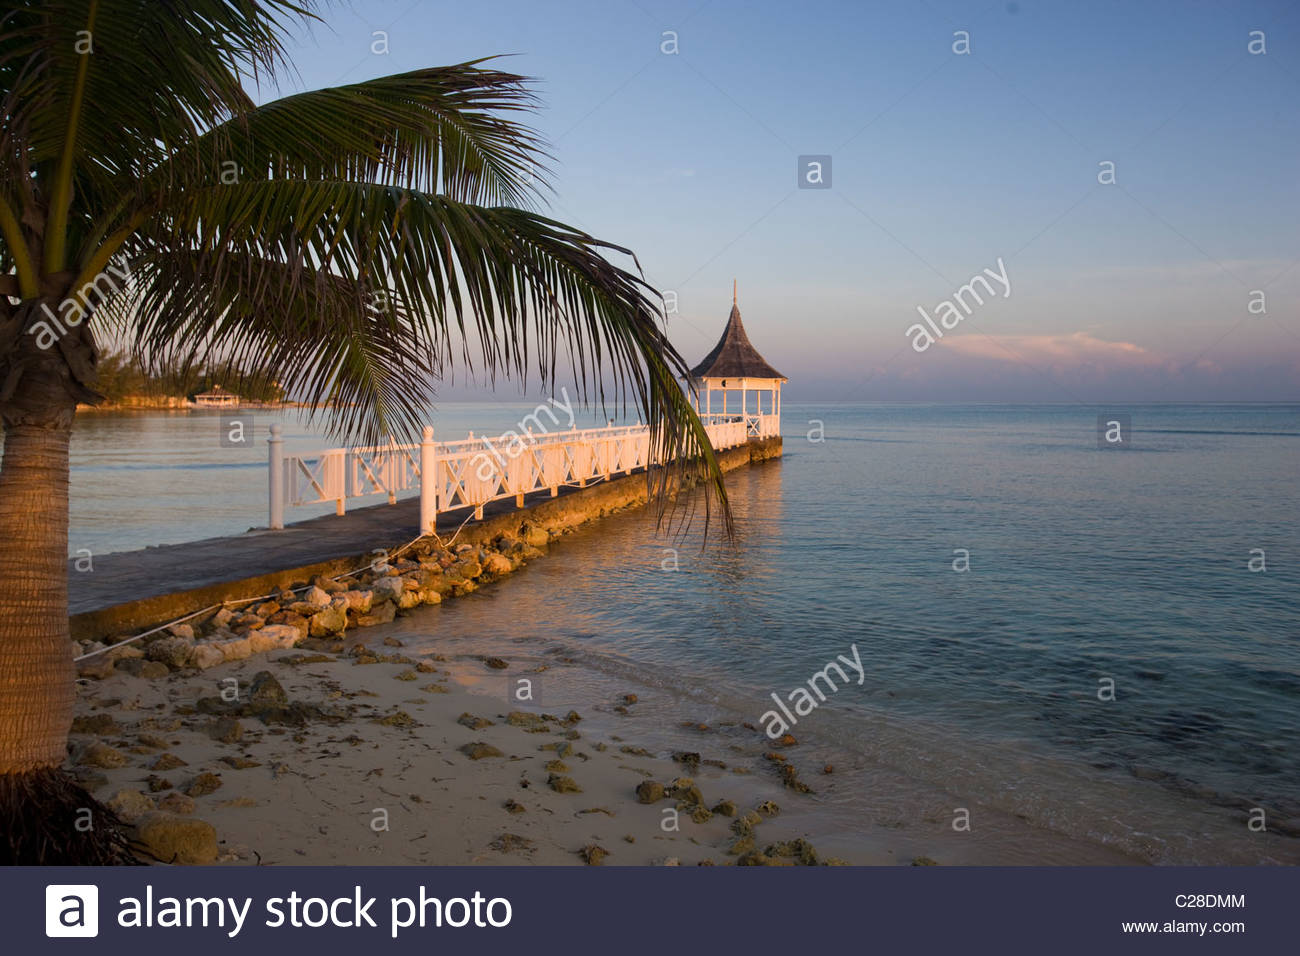 The sea surrounded pavilion in Half Moon Resort. Stock Photo